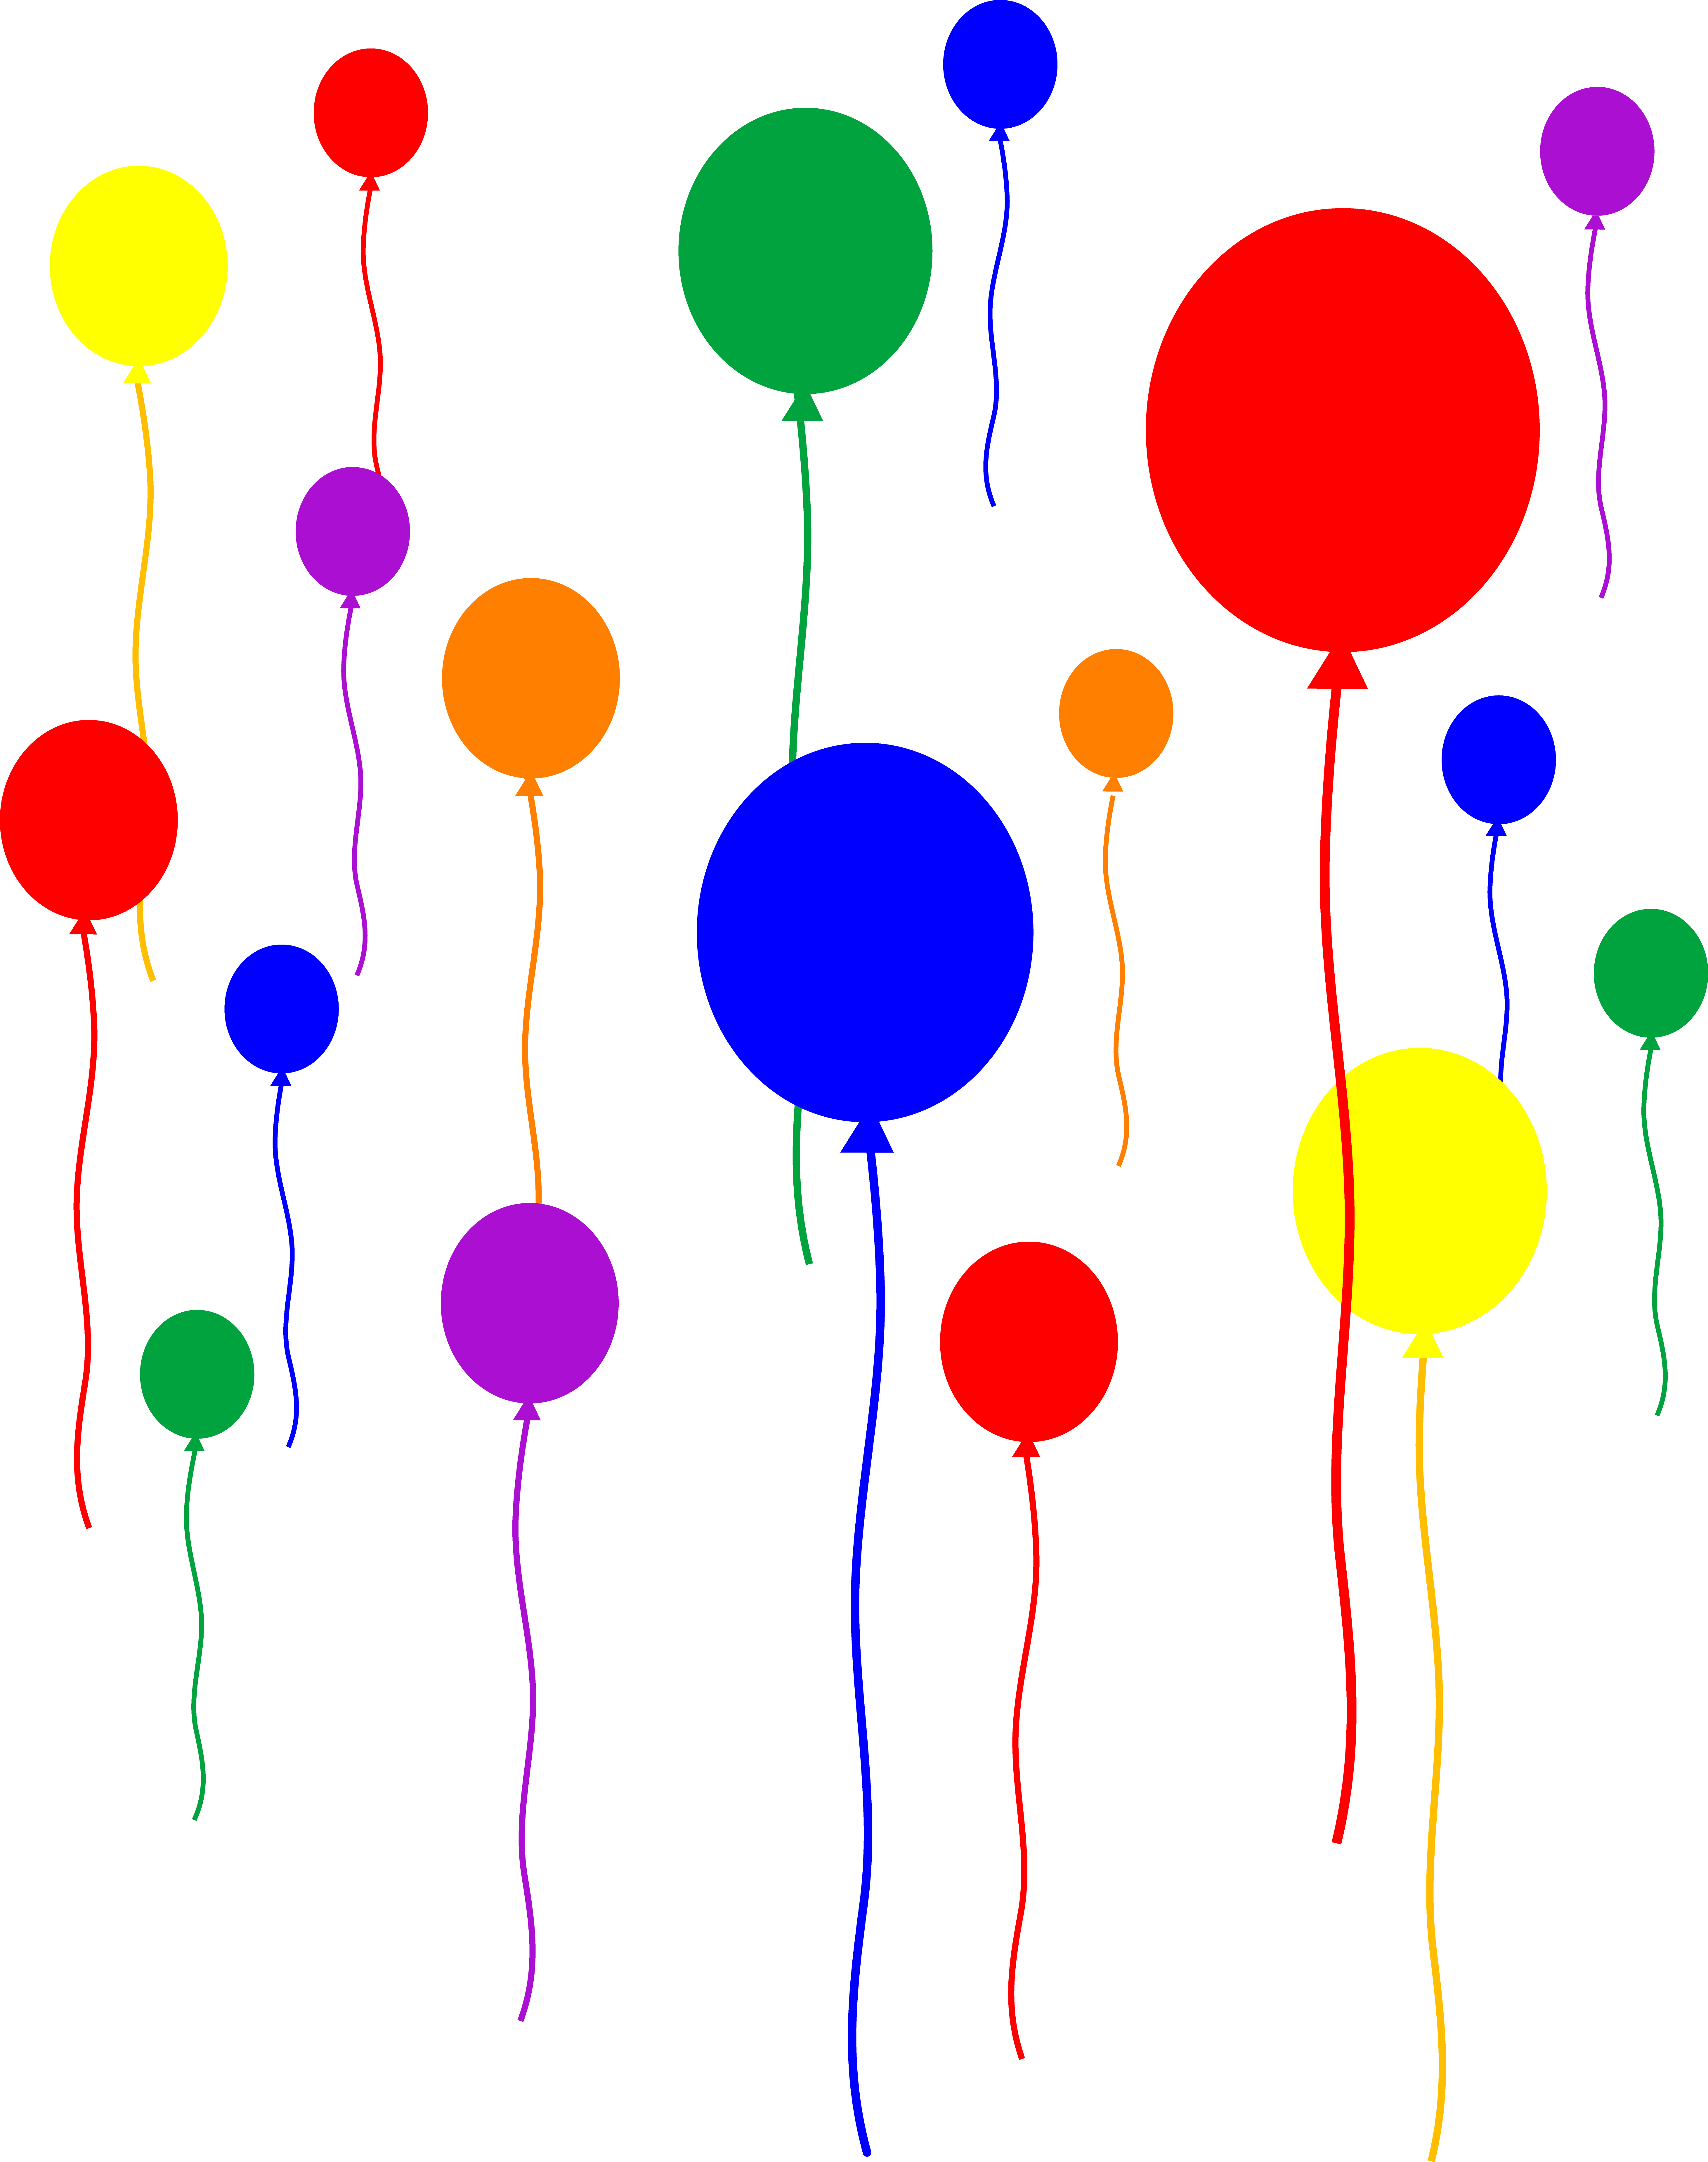 Animated clipart balloons free graphic black and white Free Moving Birthday Cliparts, Download Free Clip Art, Free Clip Art ... graphic black and white